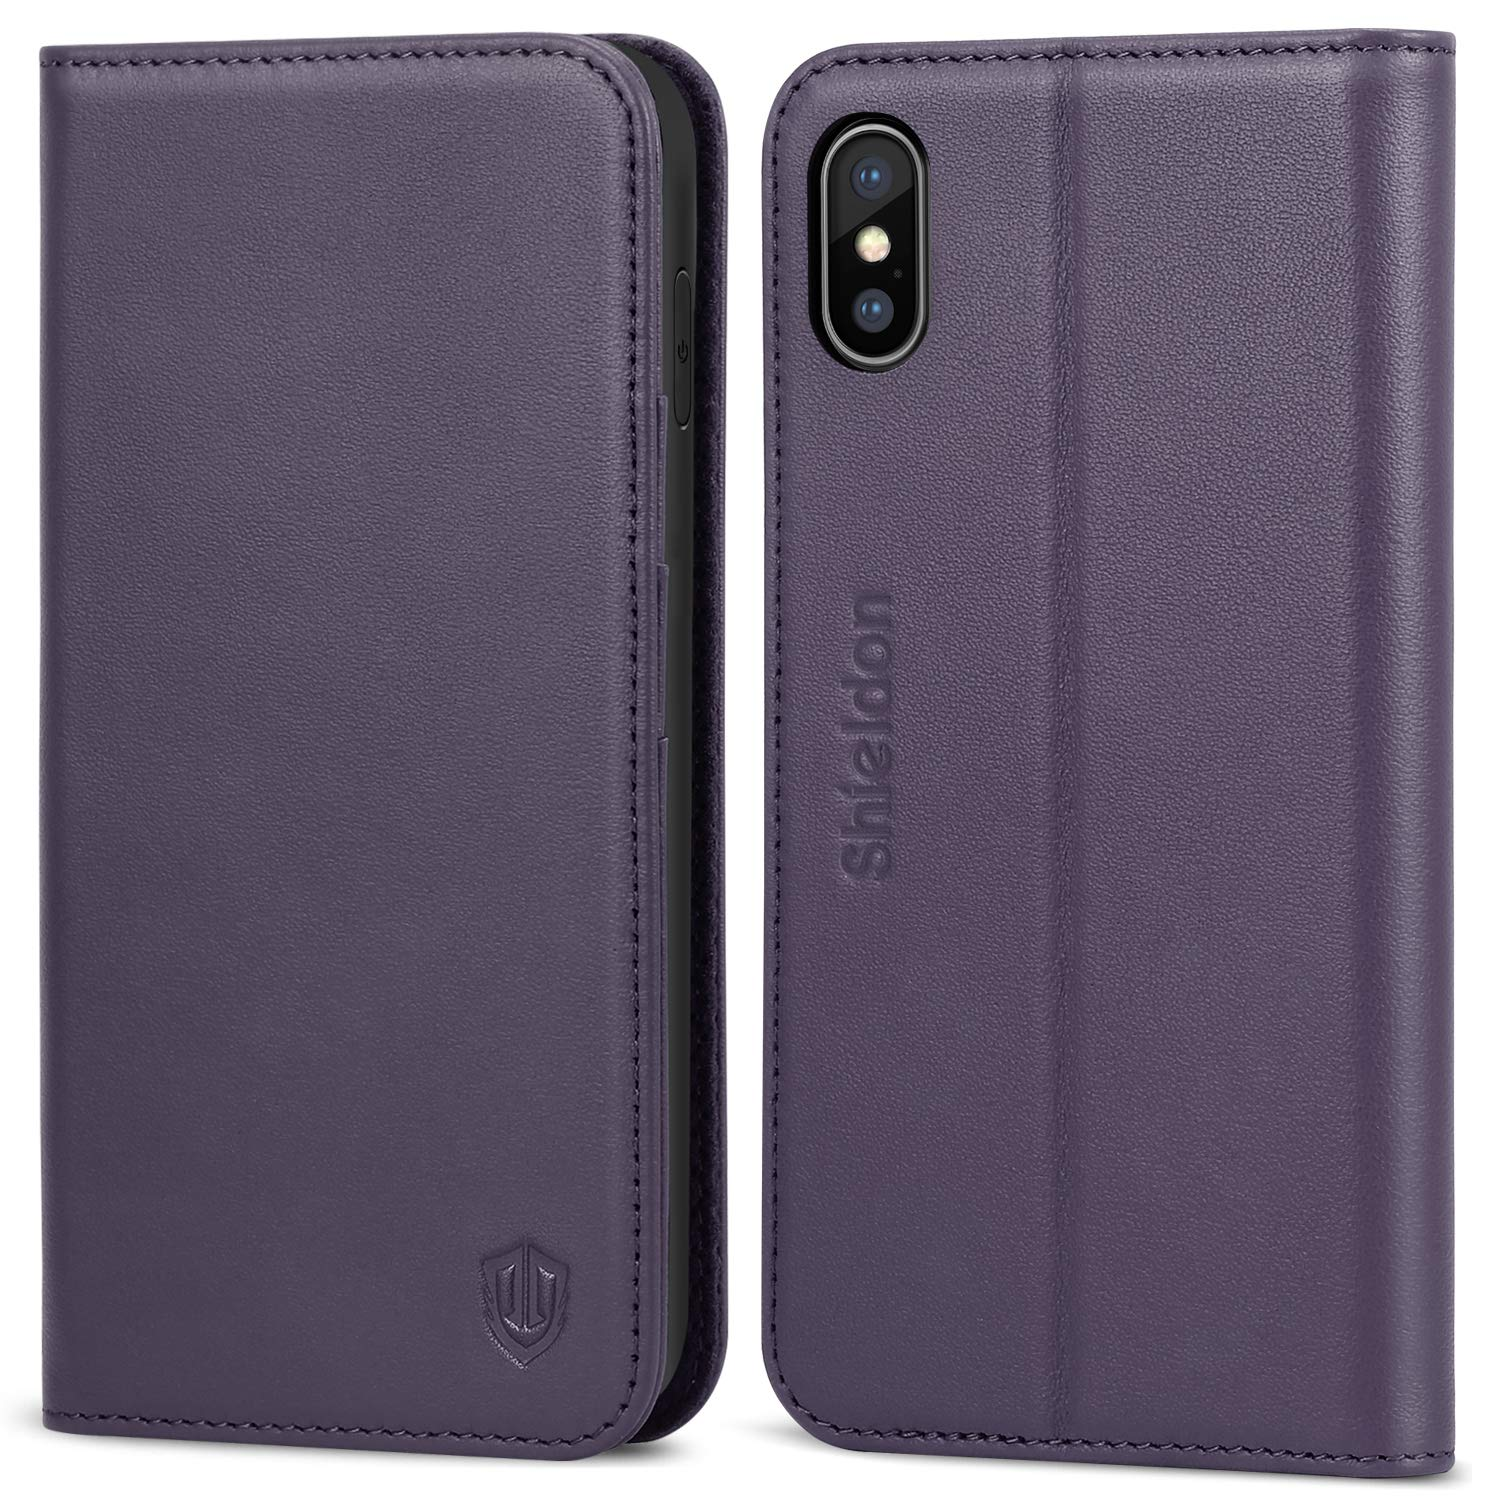 SHIELDON iPhone Xs Max Case, Genuine Leather iPhone Xs Max Magnetic Wallet Case with Auto Sleep/Wake Kickstand RFID Card Slots Compatible with iPhone Xs Max (6.5 Inch 2018 Release) - Purple